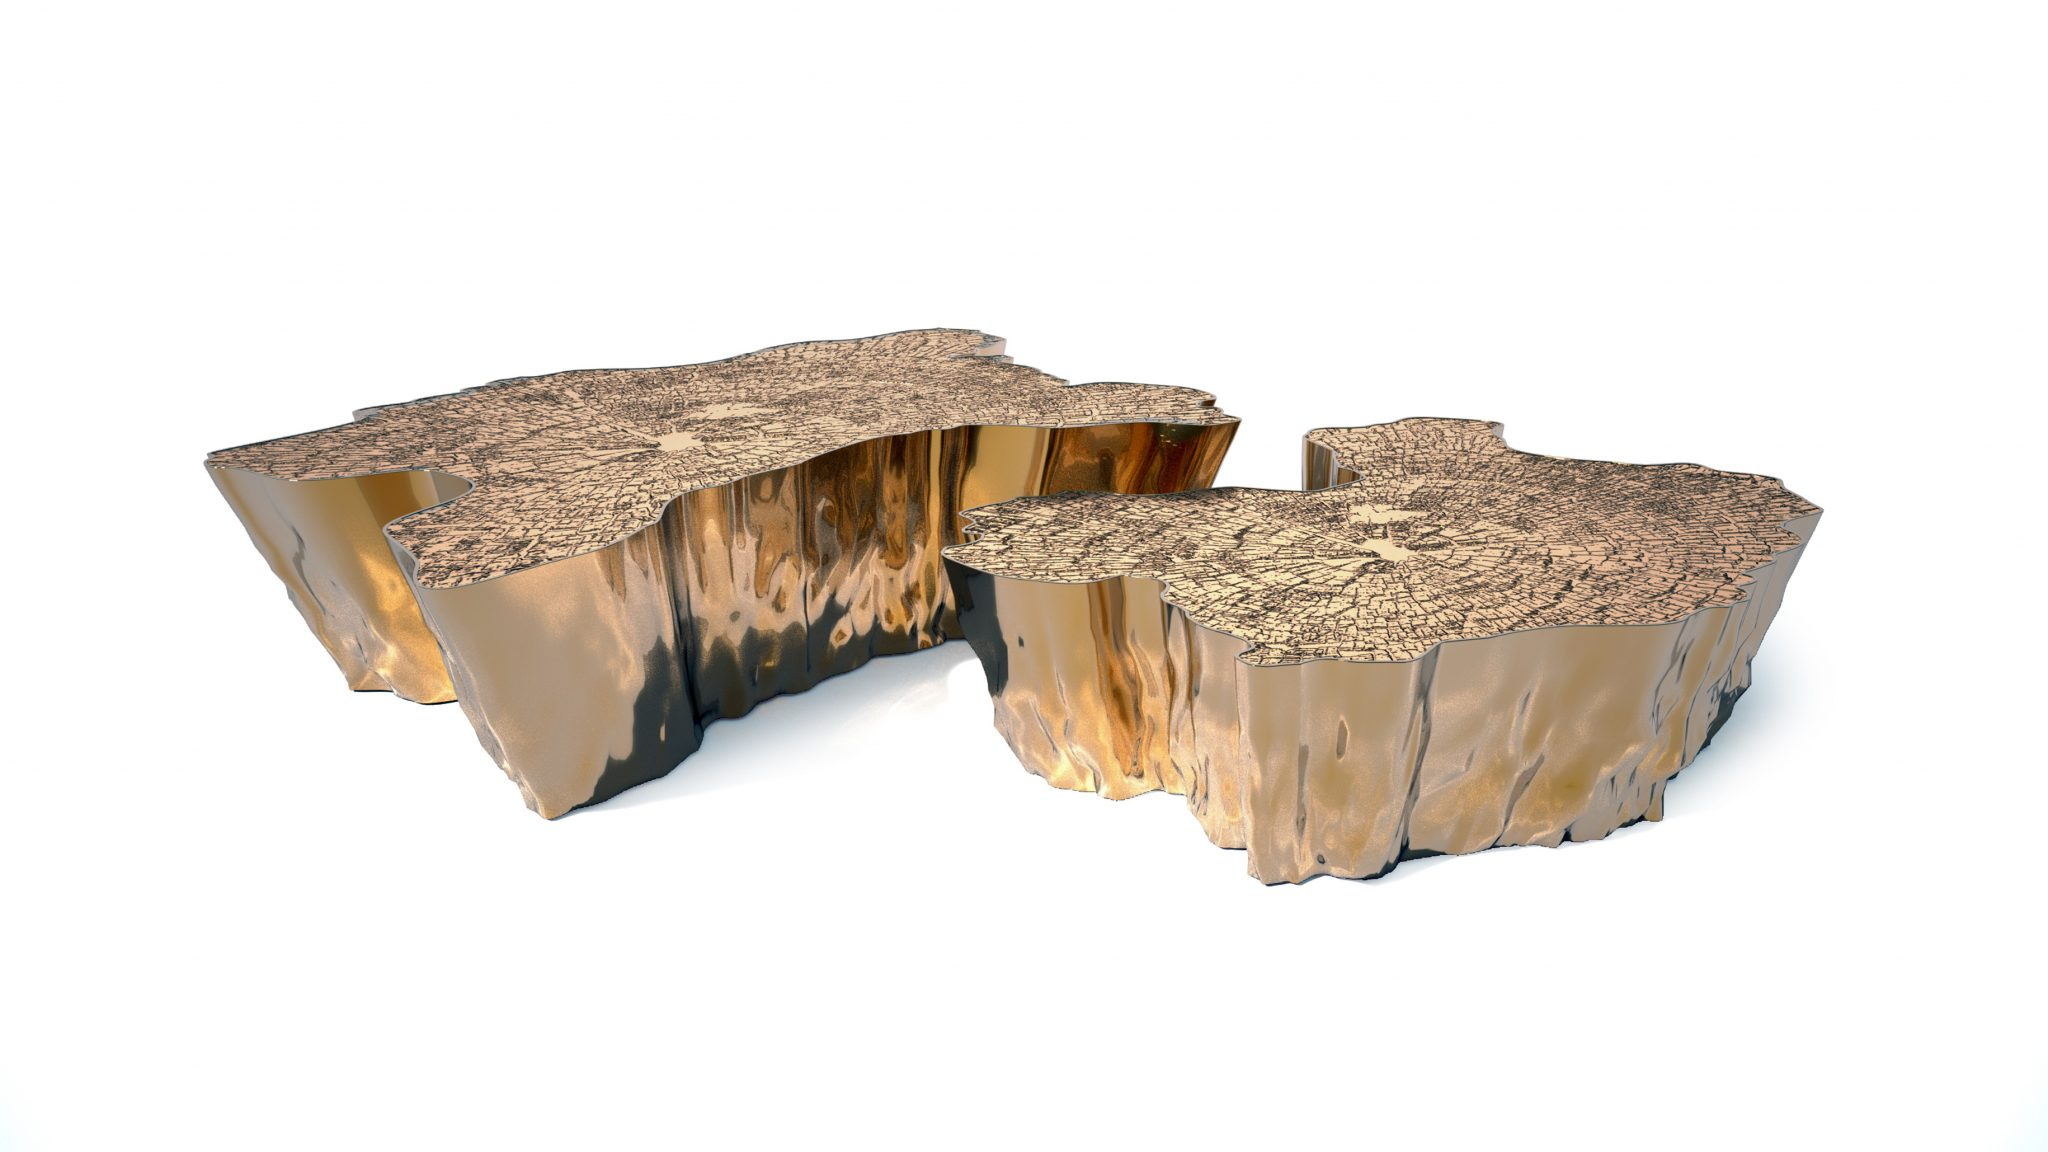 coffee table designs These Coffee Table Designs Are Just Perfect For Summer Season eden 01